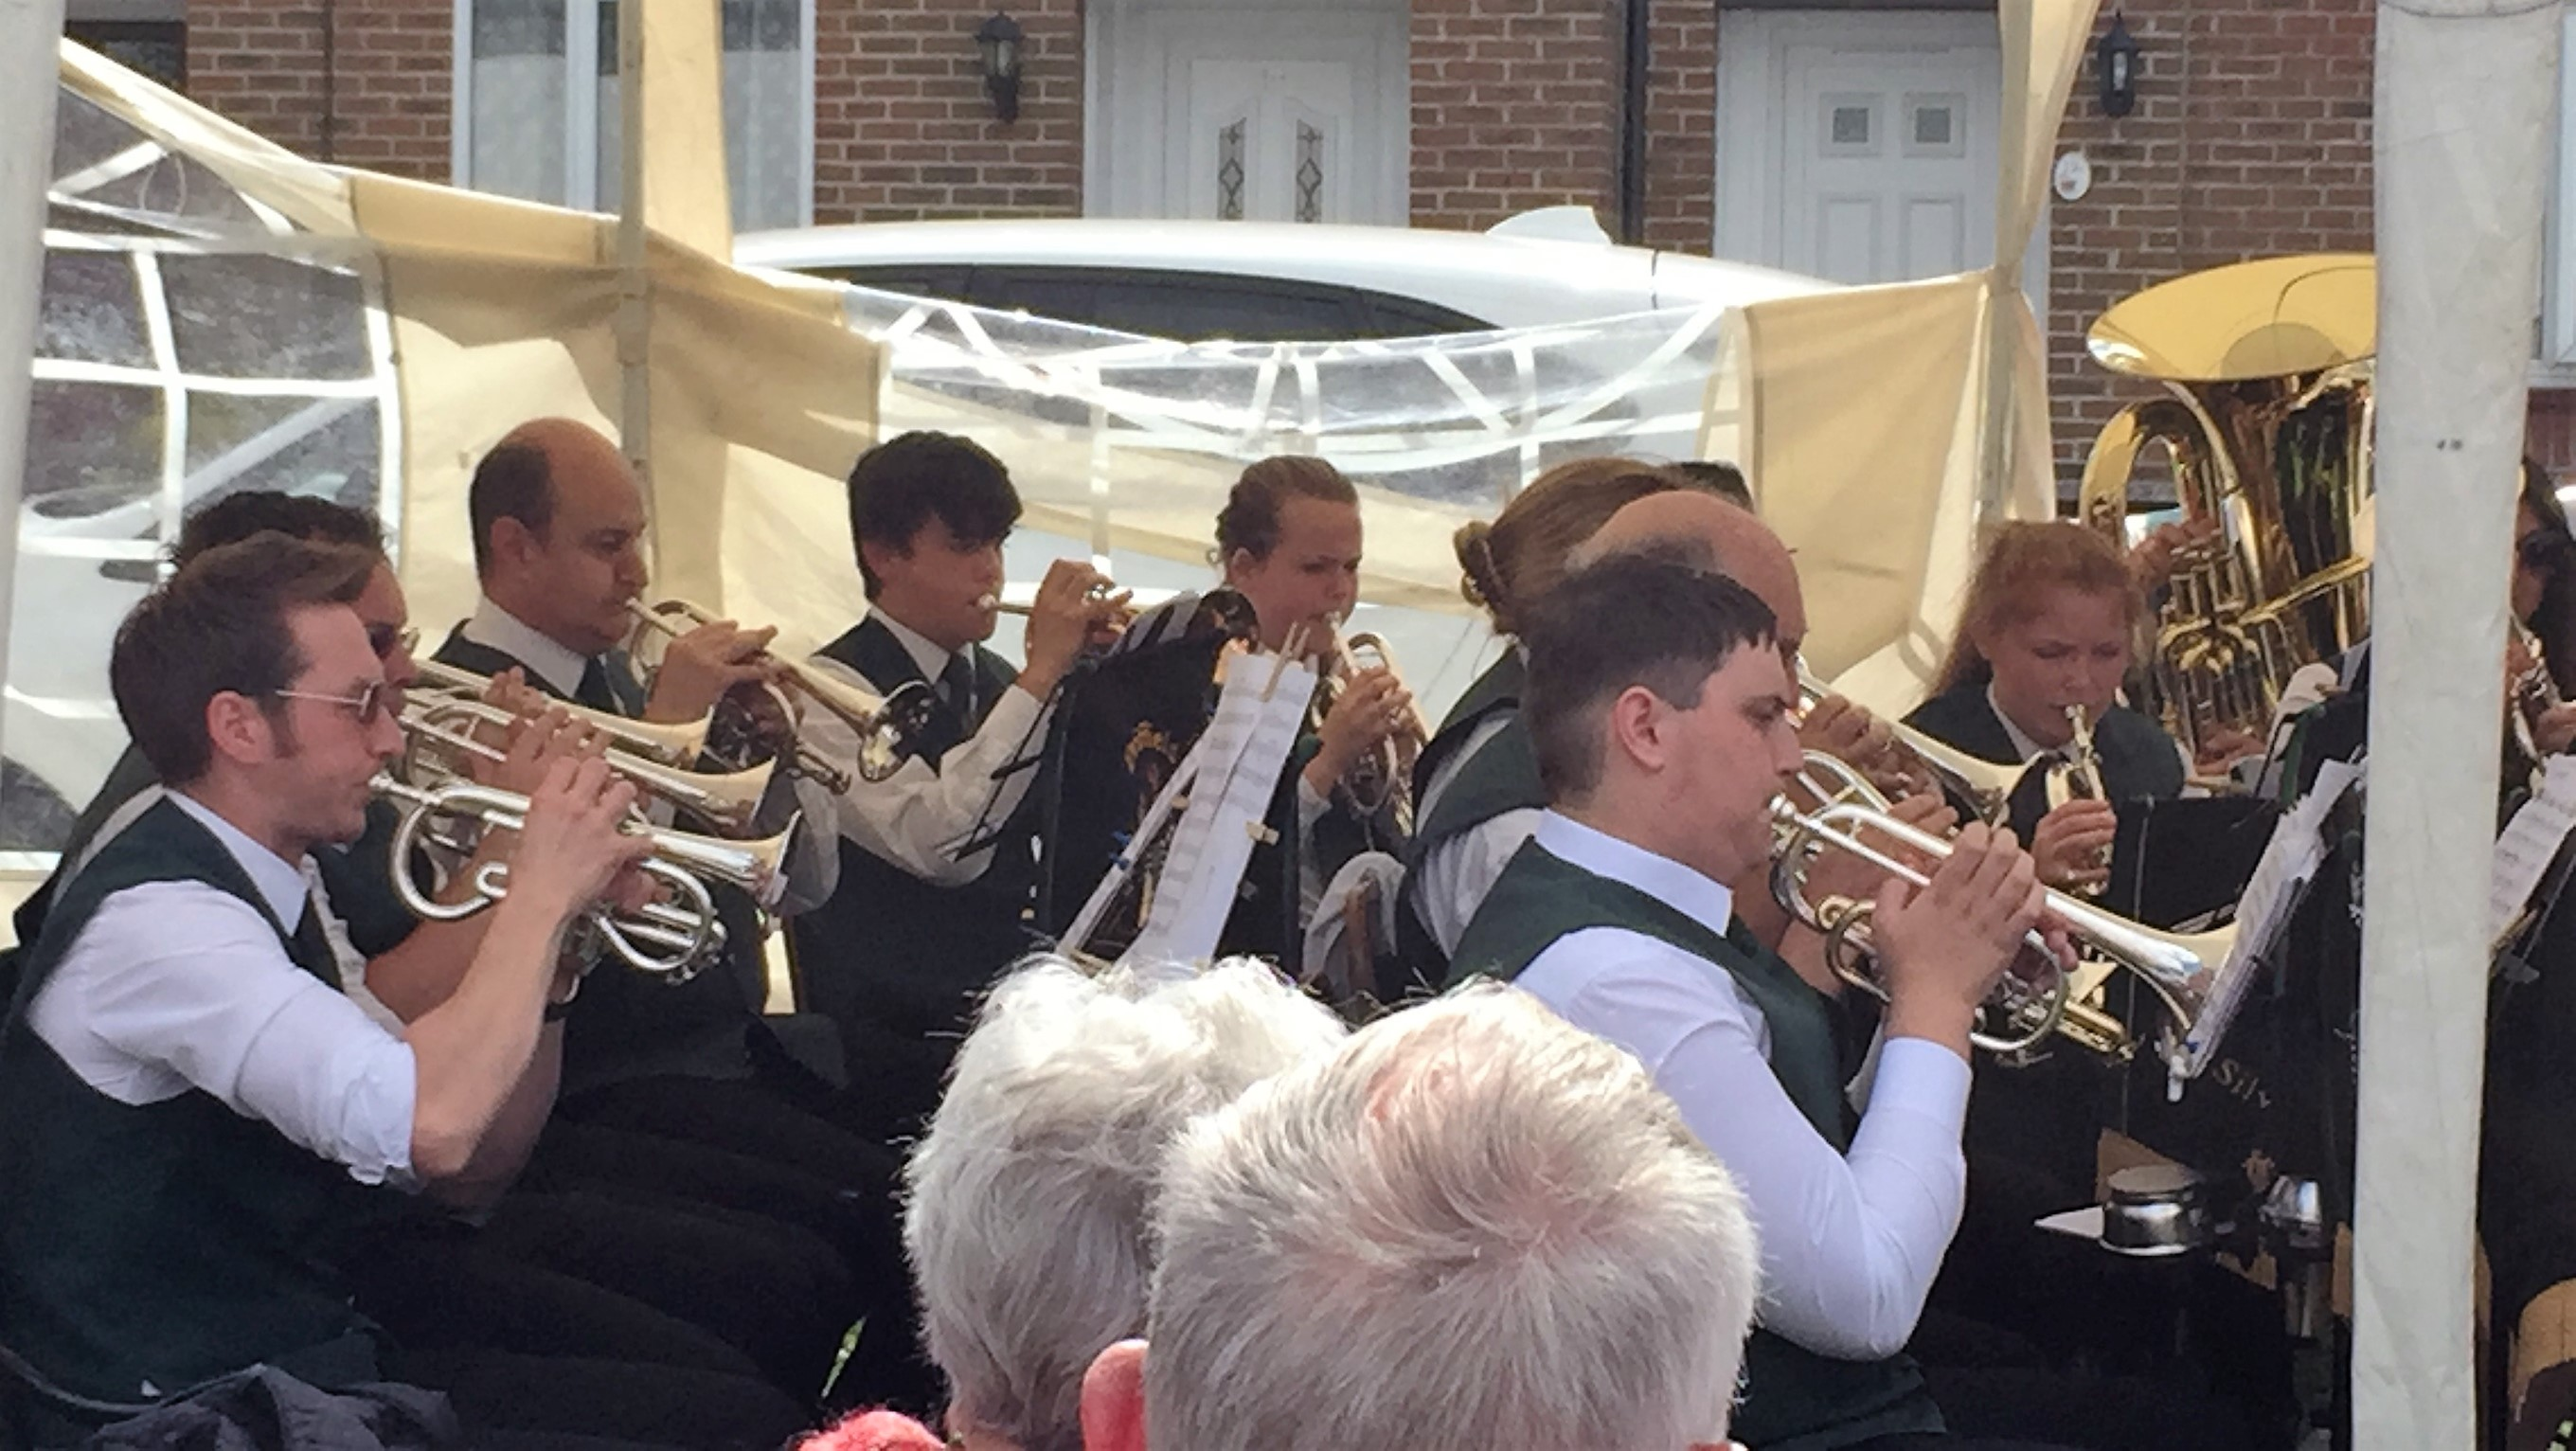 Cornet Section Riverhead Gala Driffield July 2017